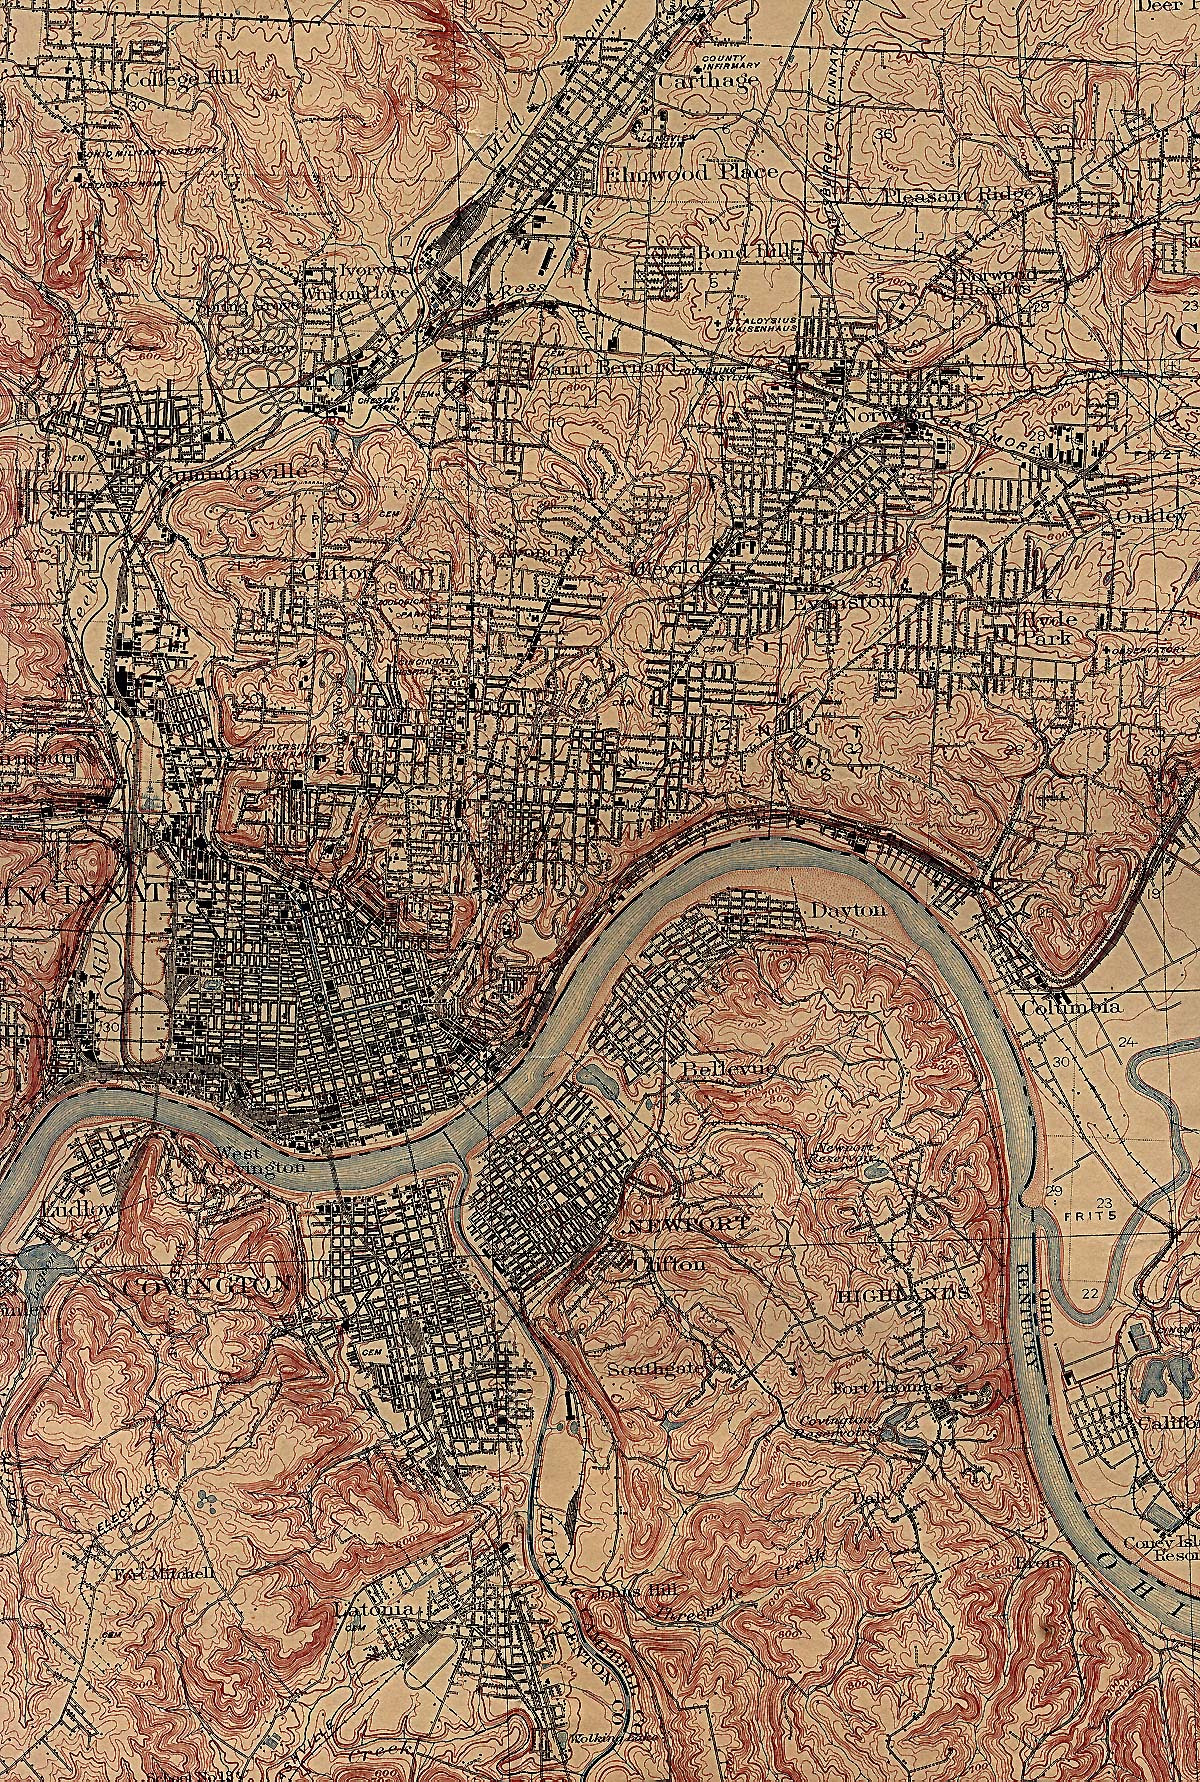 Cincinnati City Map, Ohio, United States 1914